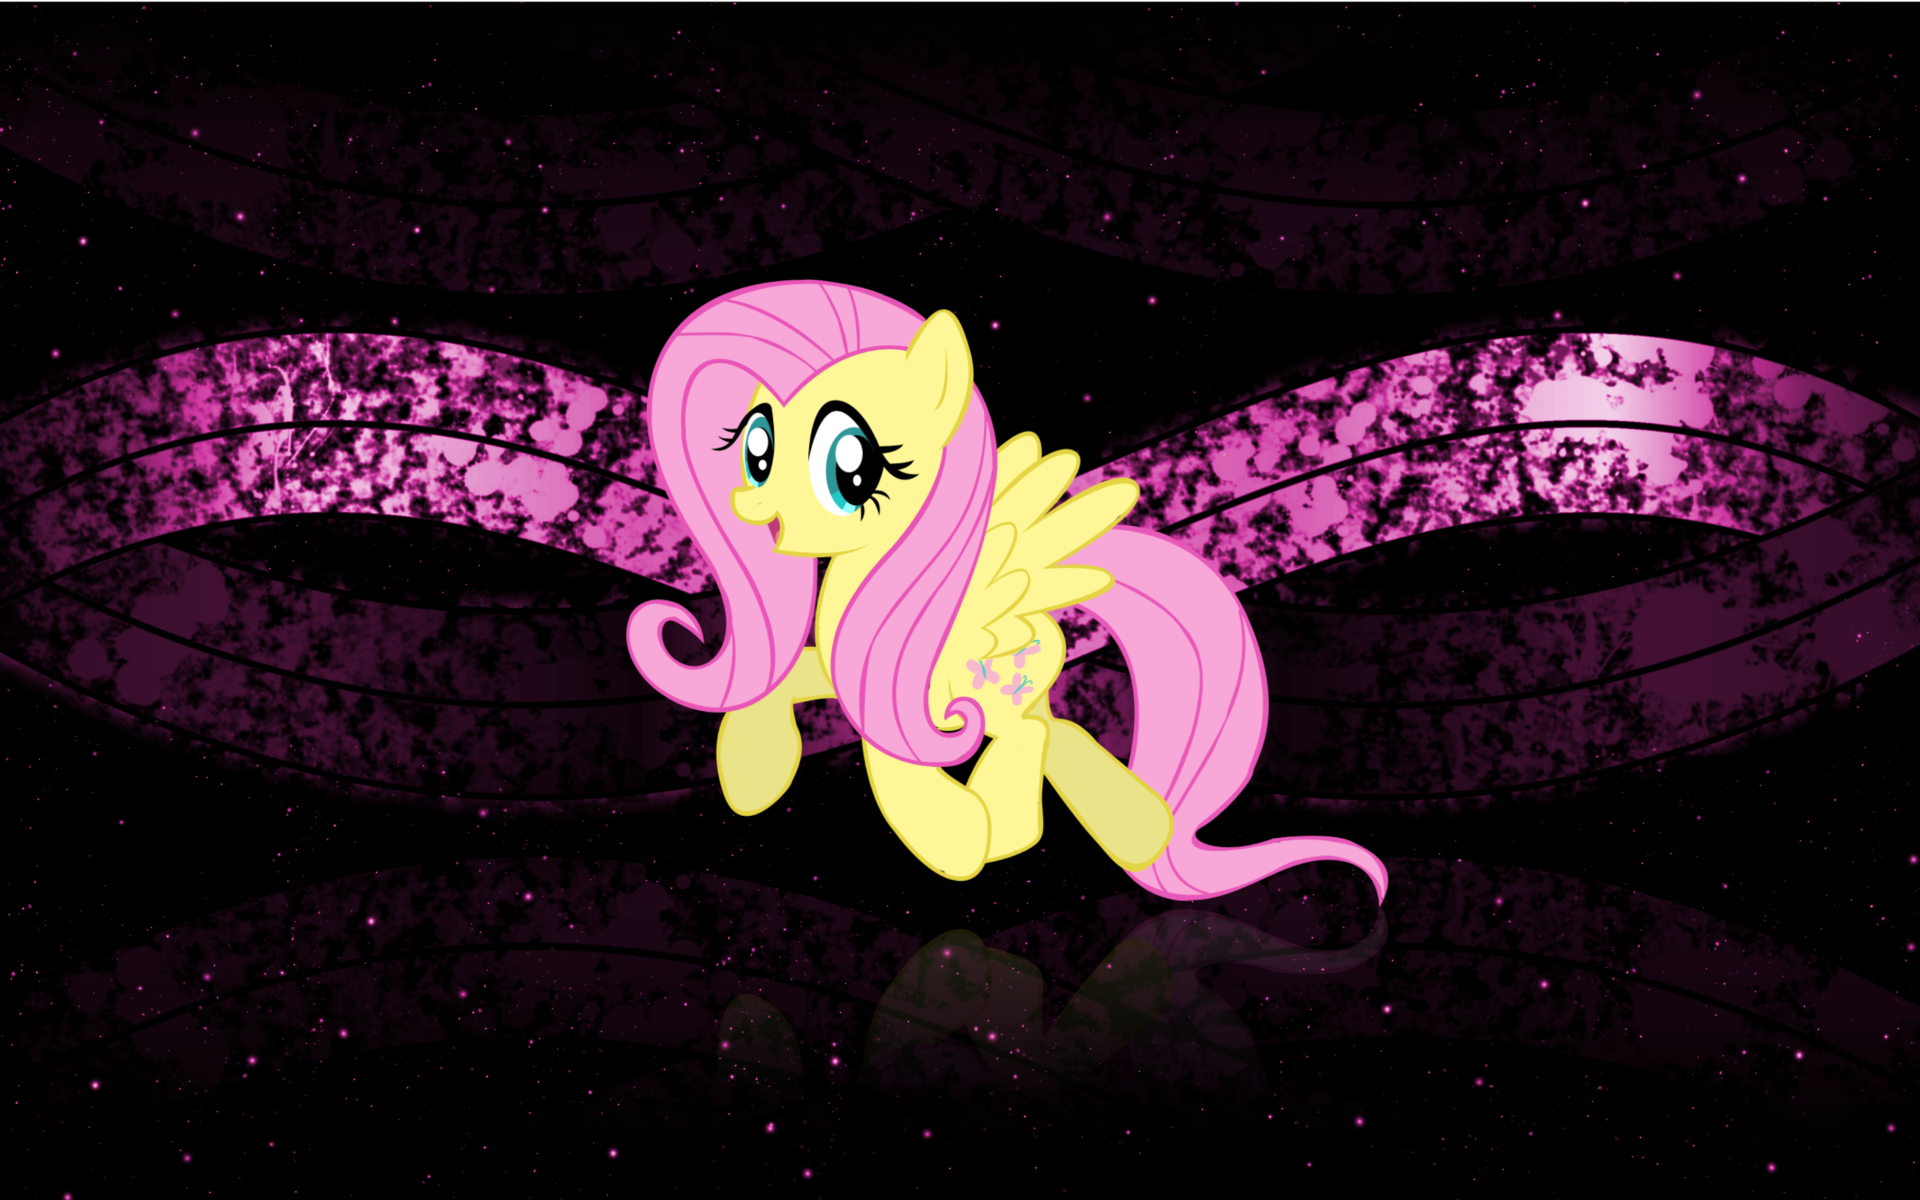 Fluttershy Wallpaper 2 by DemoMare